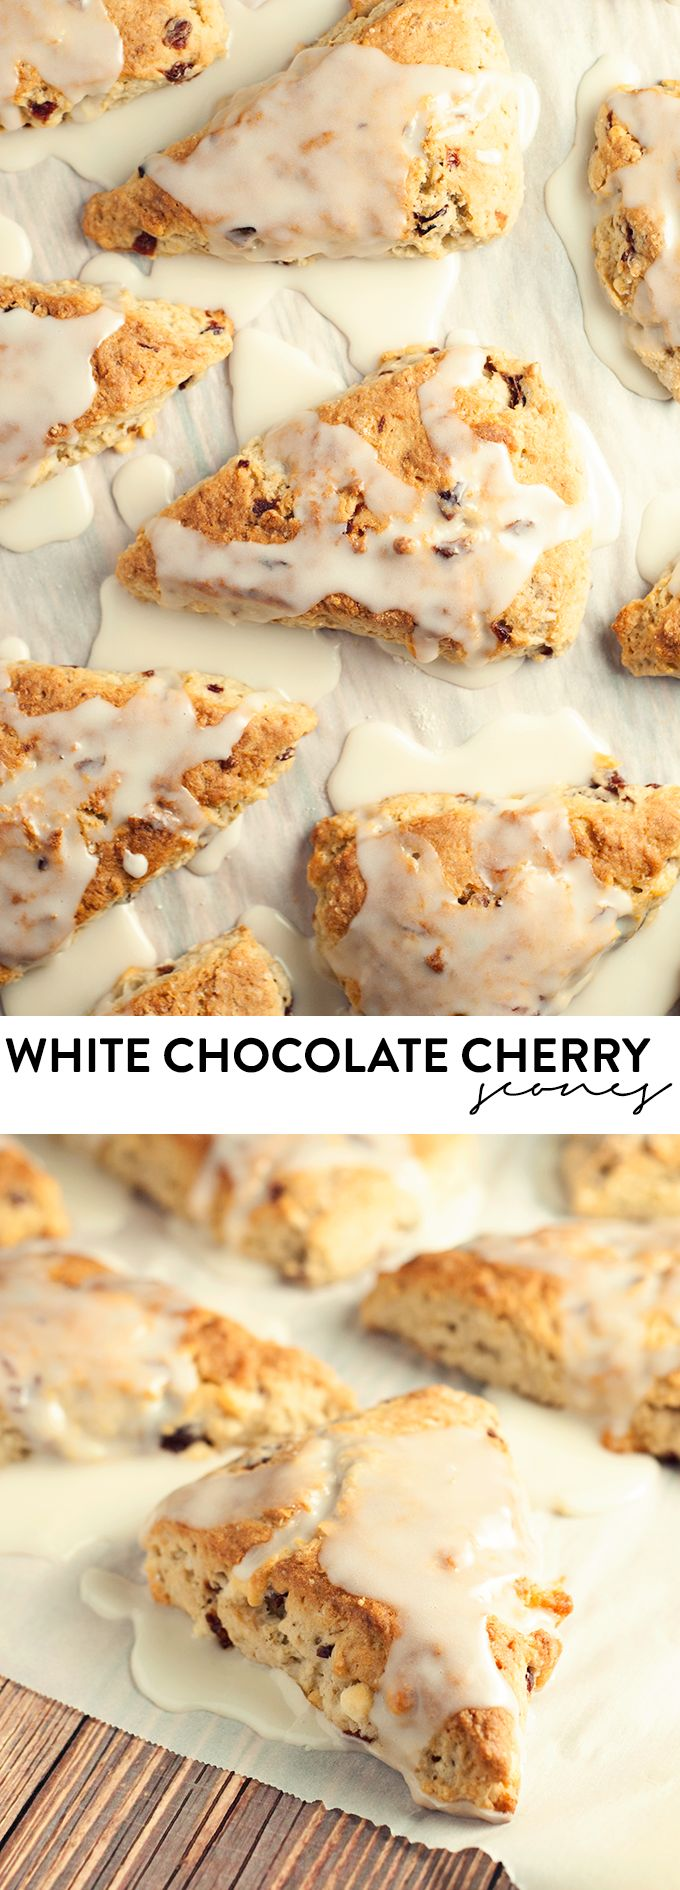 Enjoy breakfast in style with these amazingly simple white chocolate cherry scones! asimplepantry.com